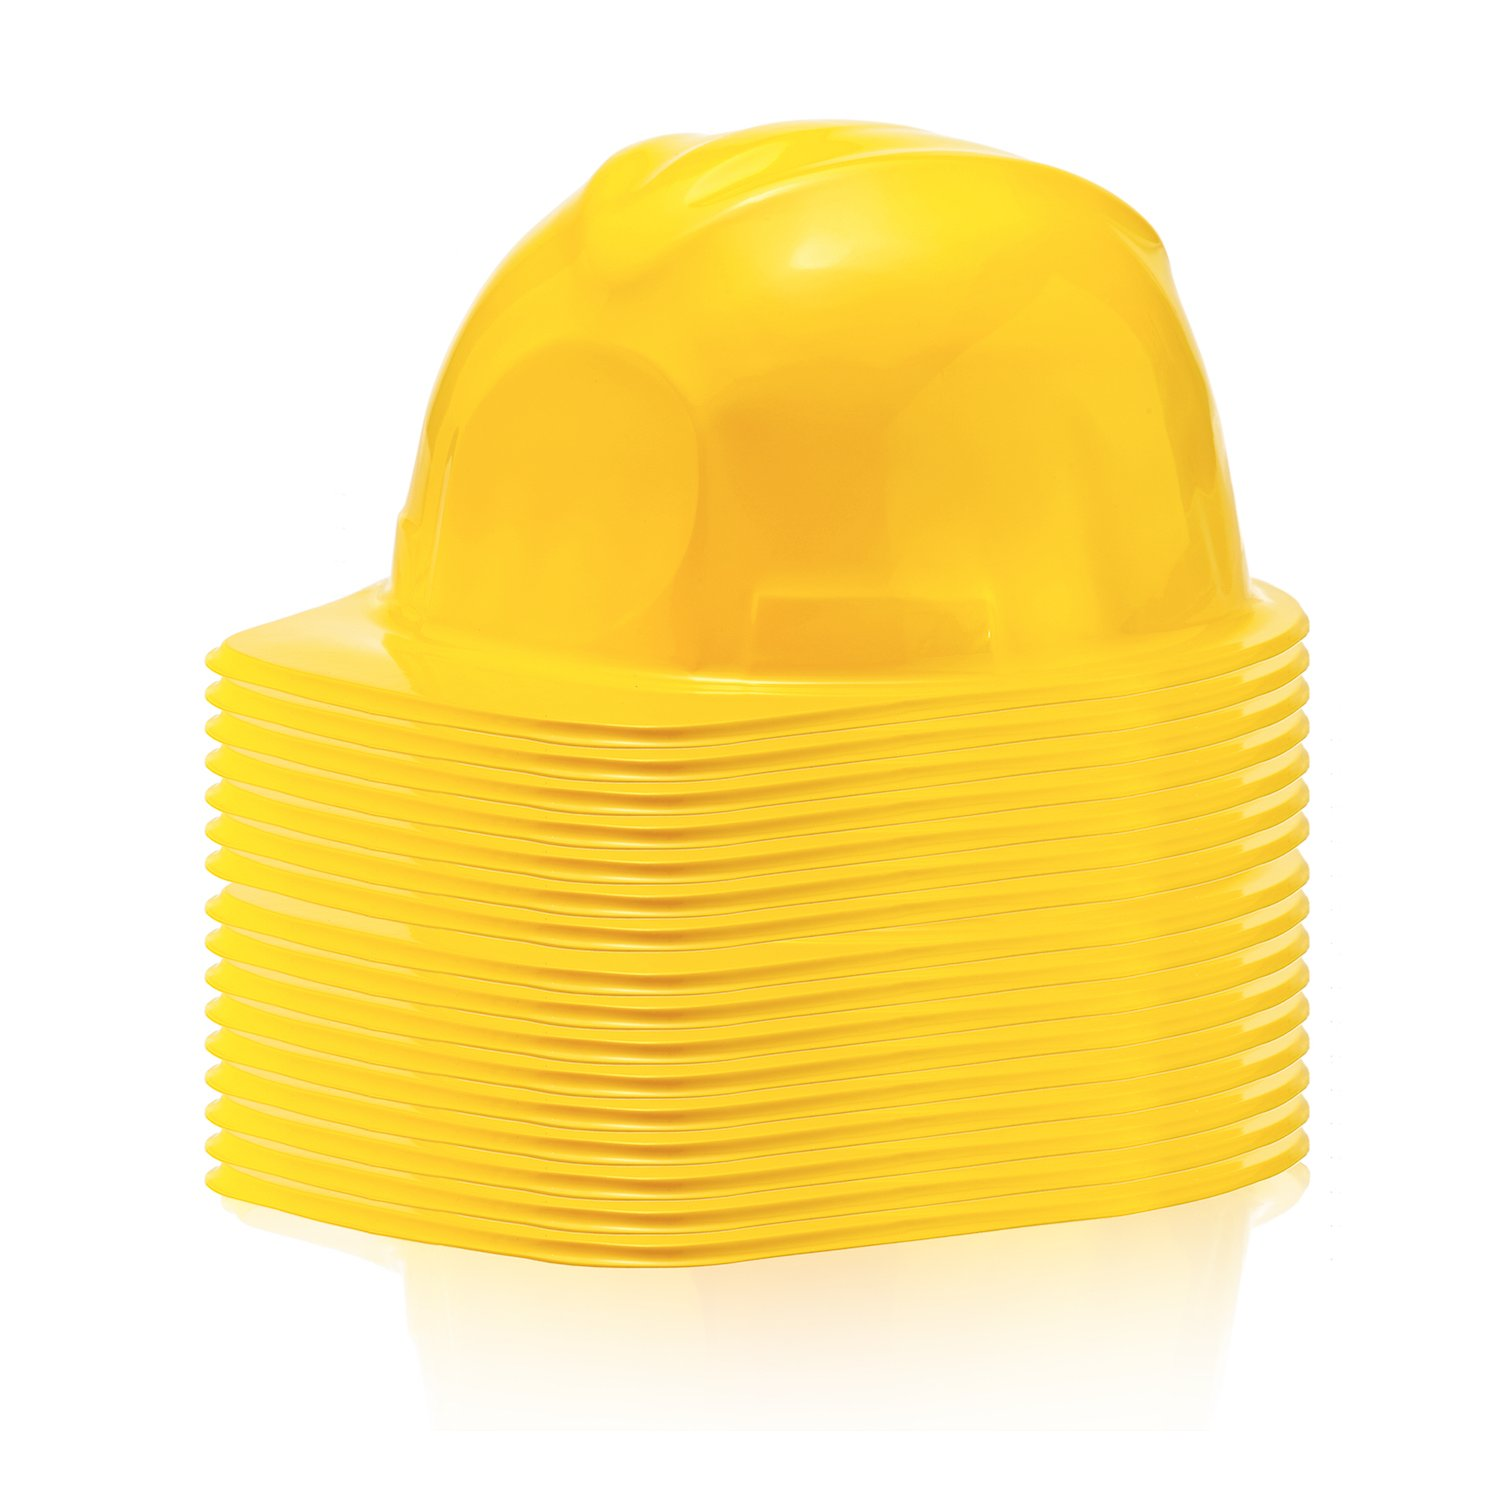 Bottles N Bags 24 Pack of Child Size Plastic Yellow Construction Hats for Young Builders by by Bottles N Bags (Image #3)